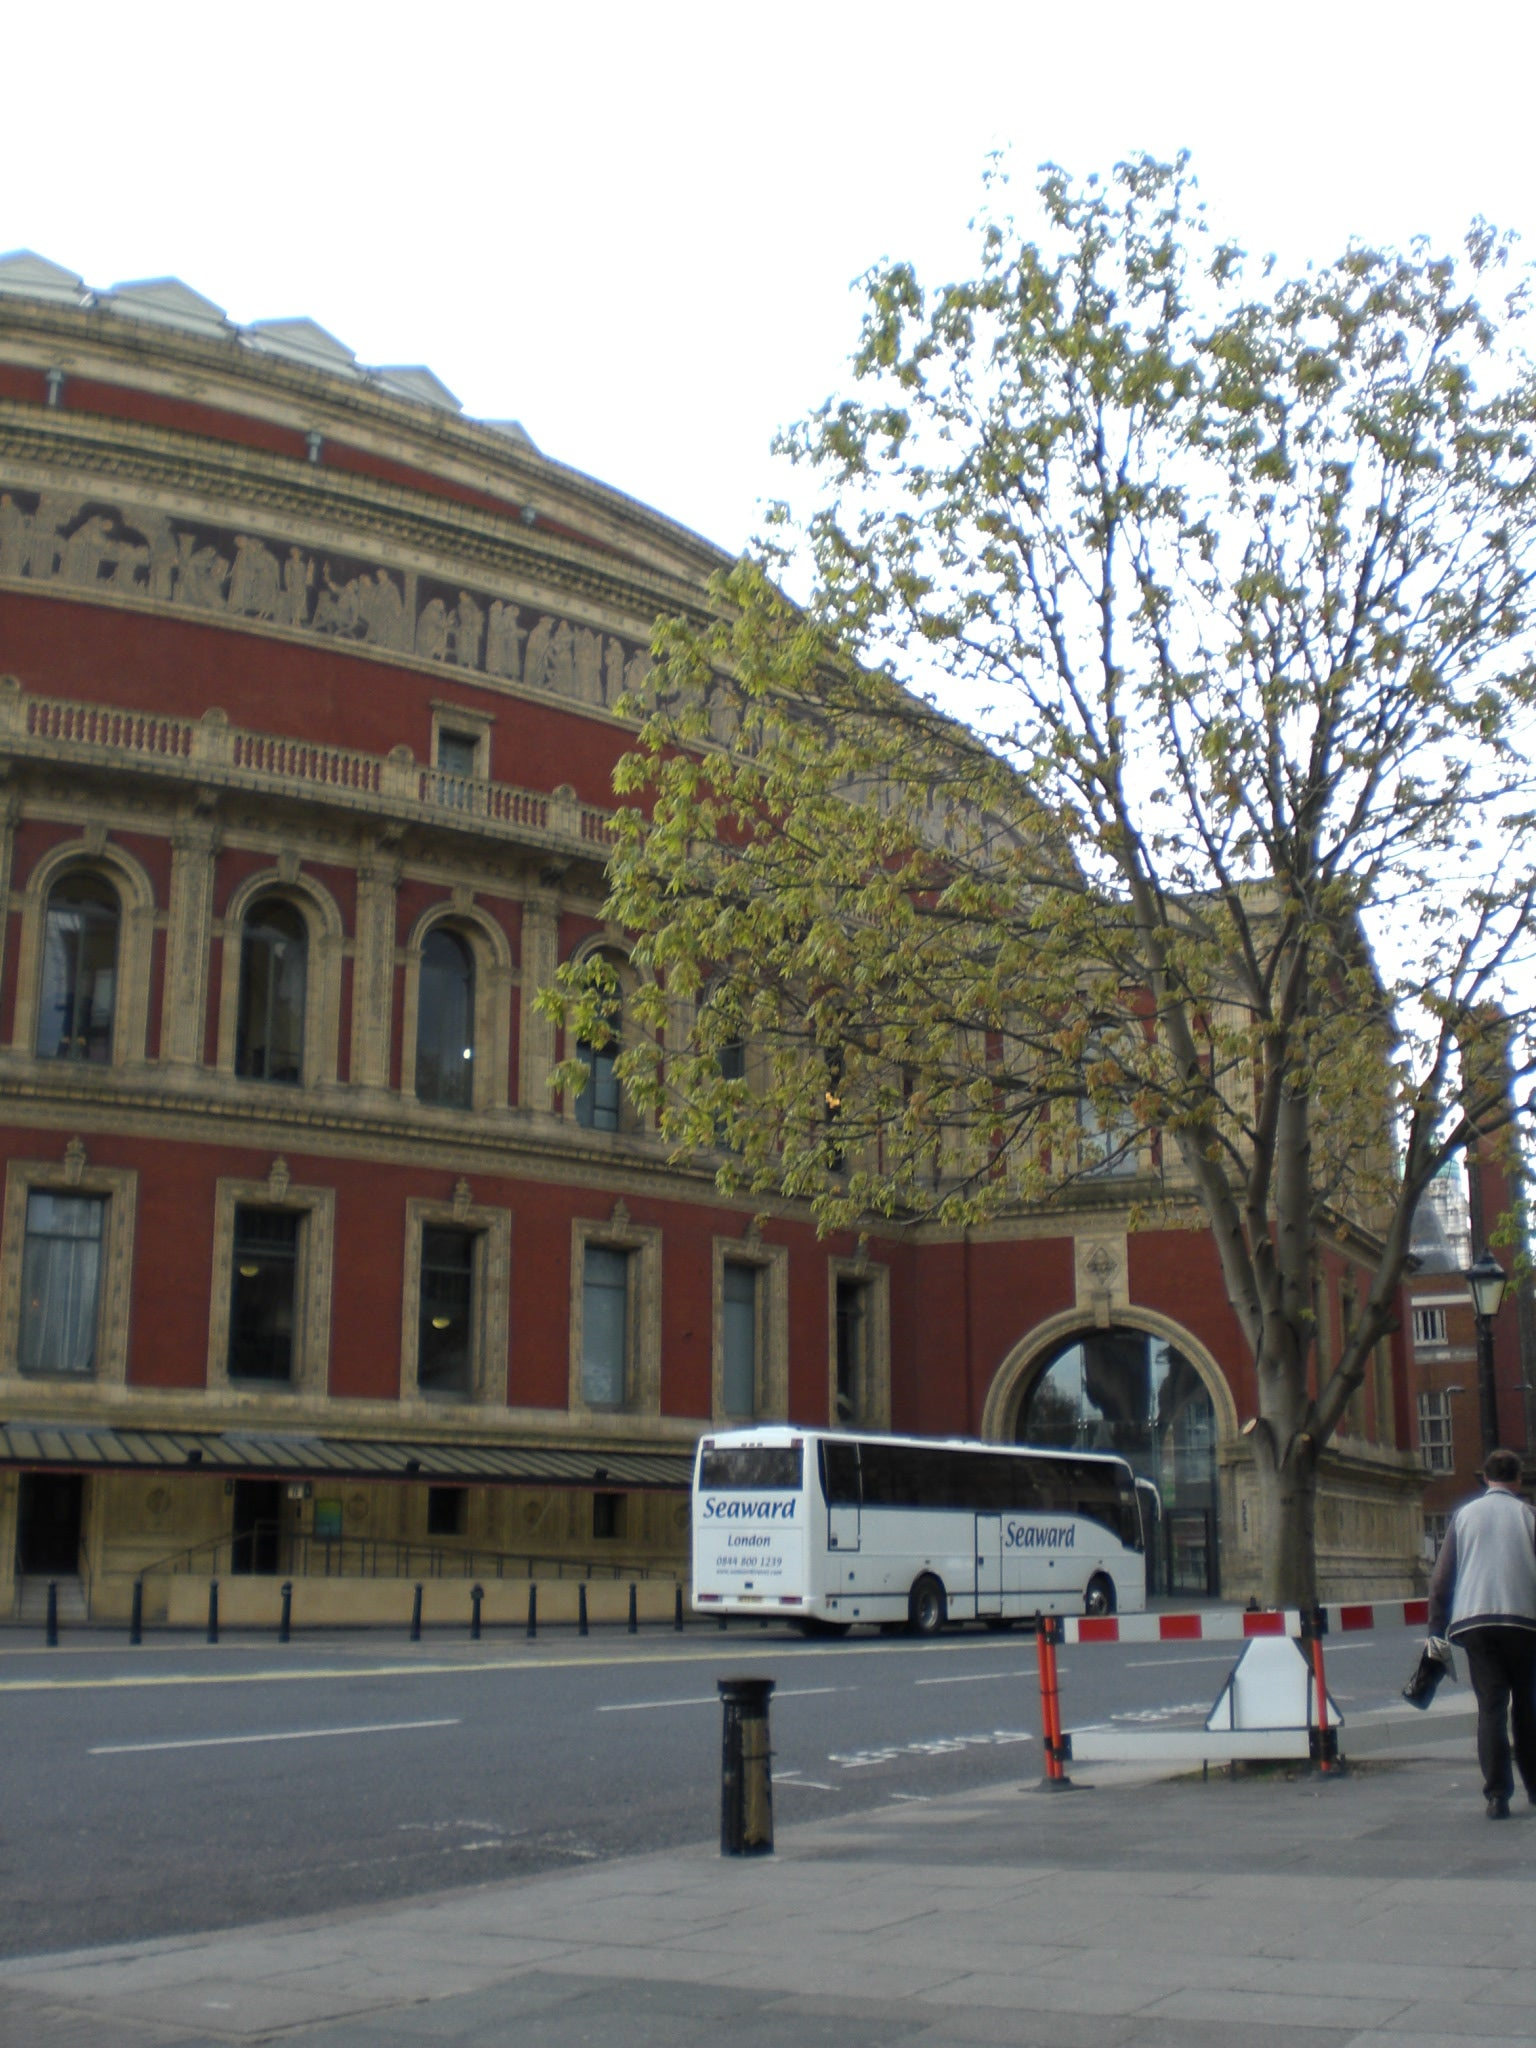 Plaza en Royal Albert Hall